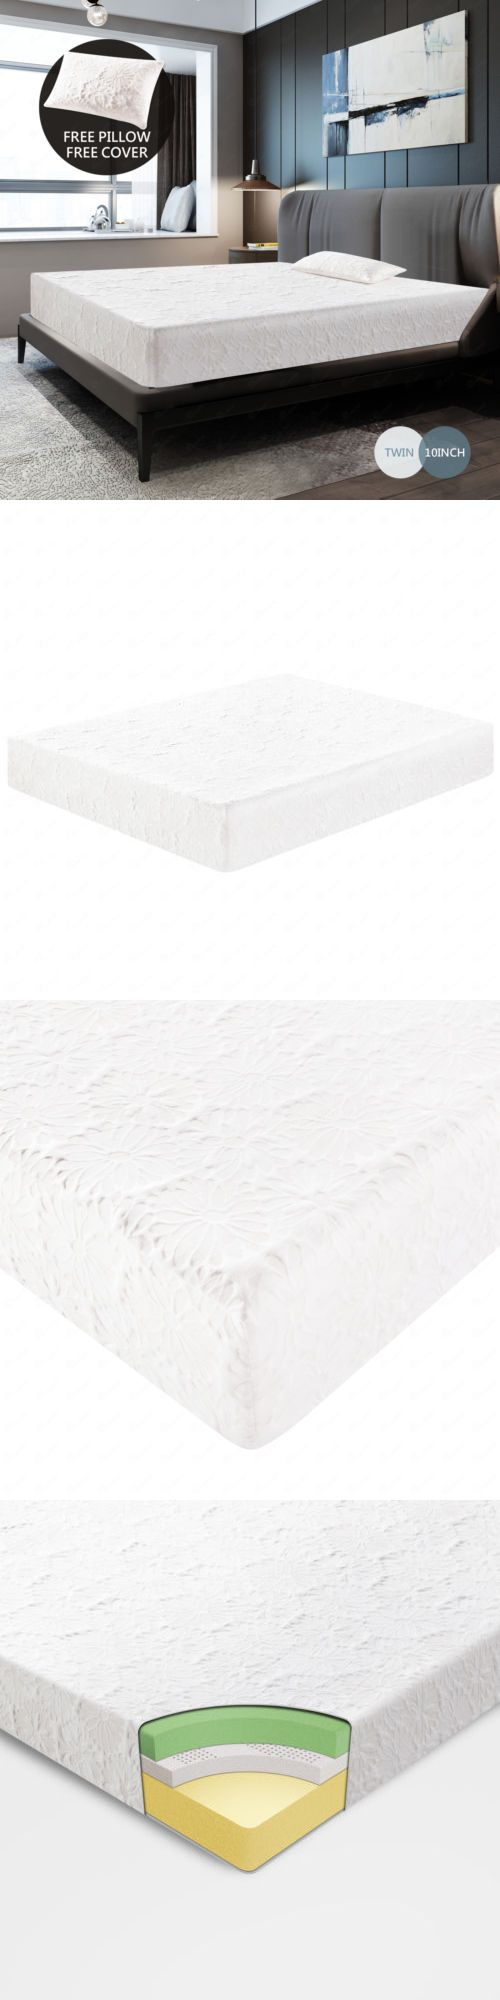 Mattress Pads and Feather Beds 175751: 10 Inch Memory Foam Bed Mattress Cool  And Gel